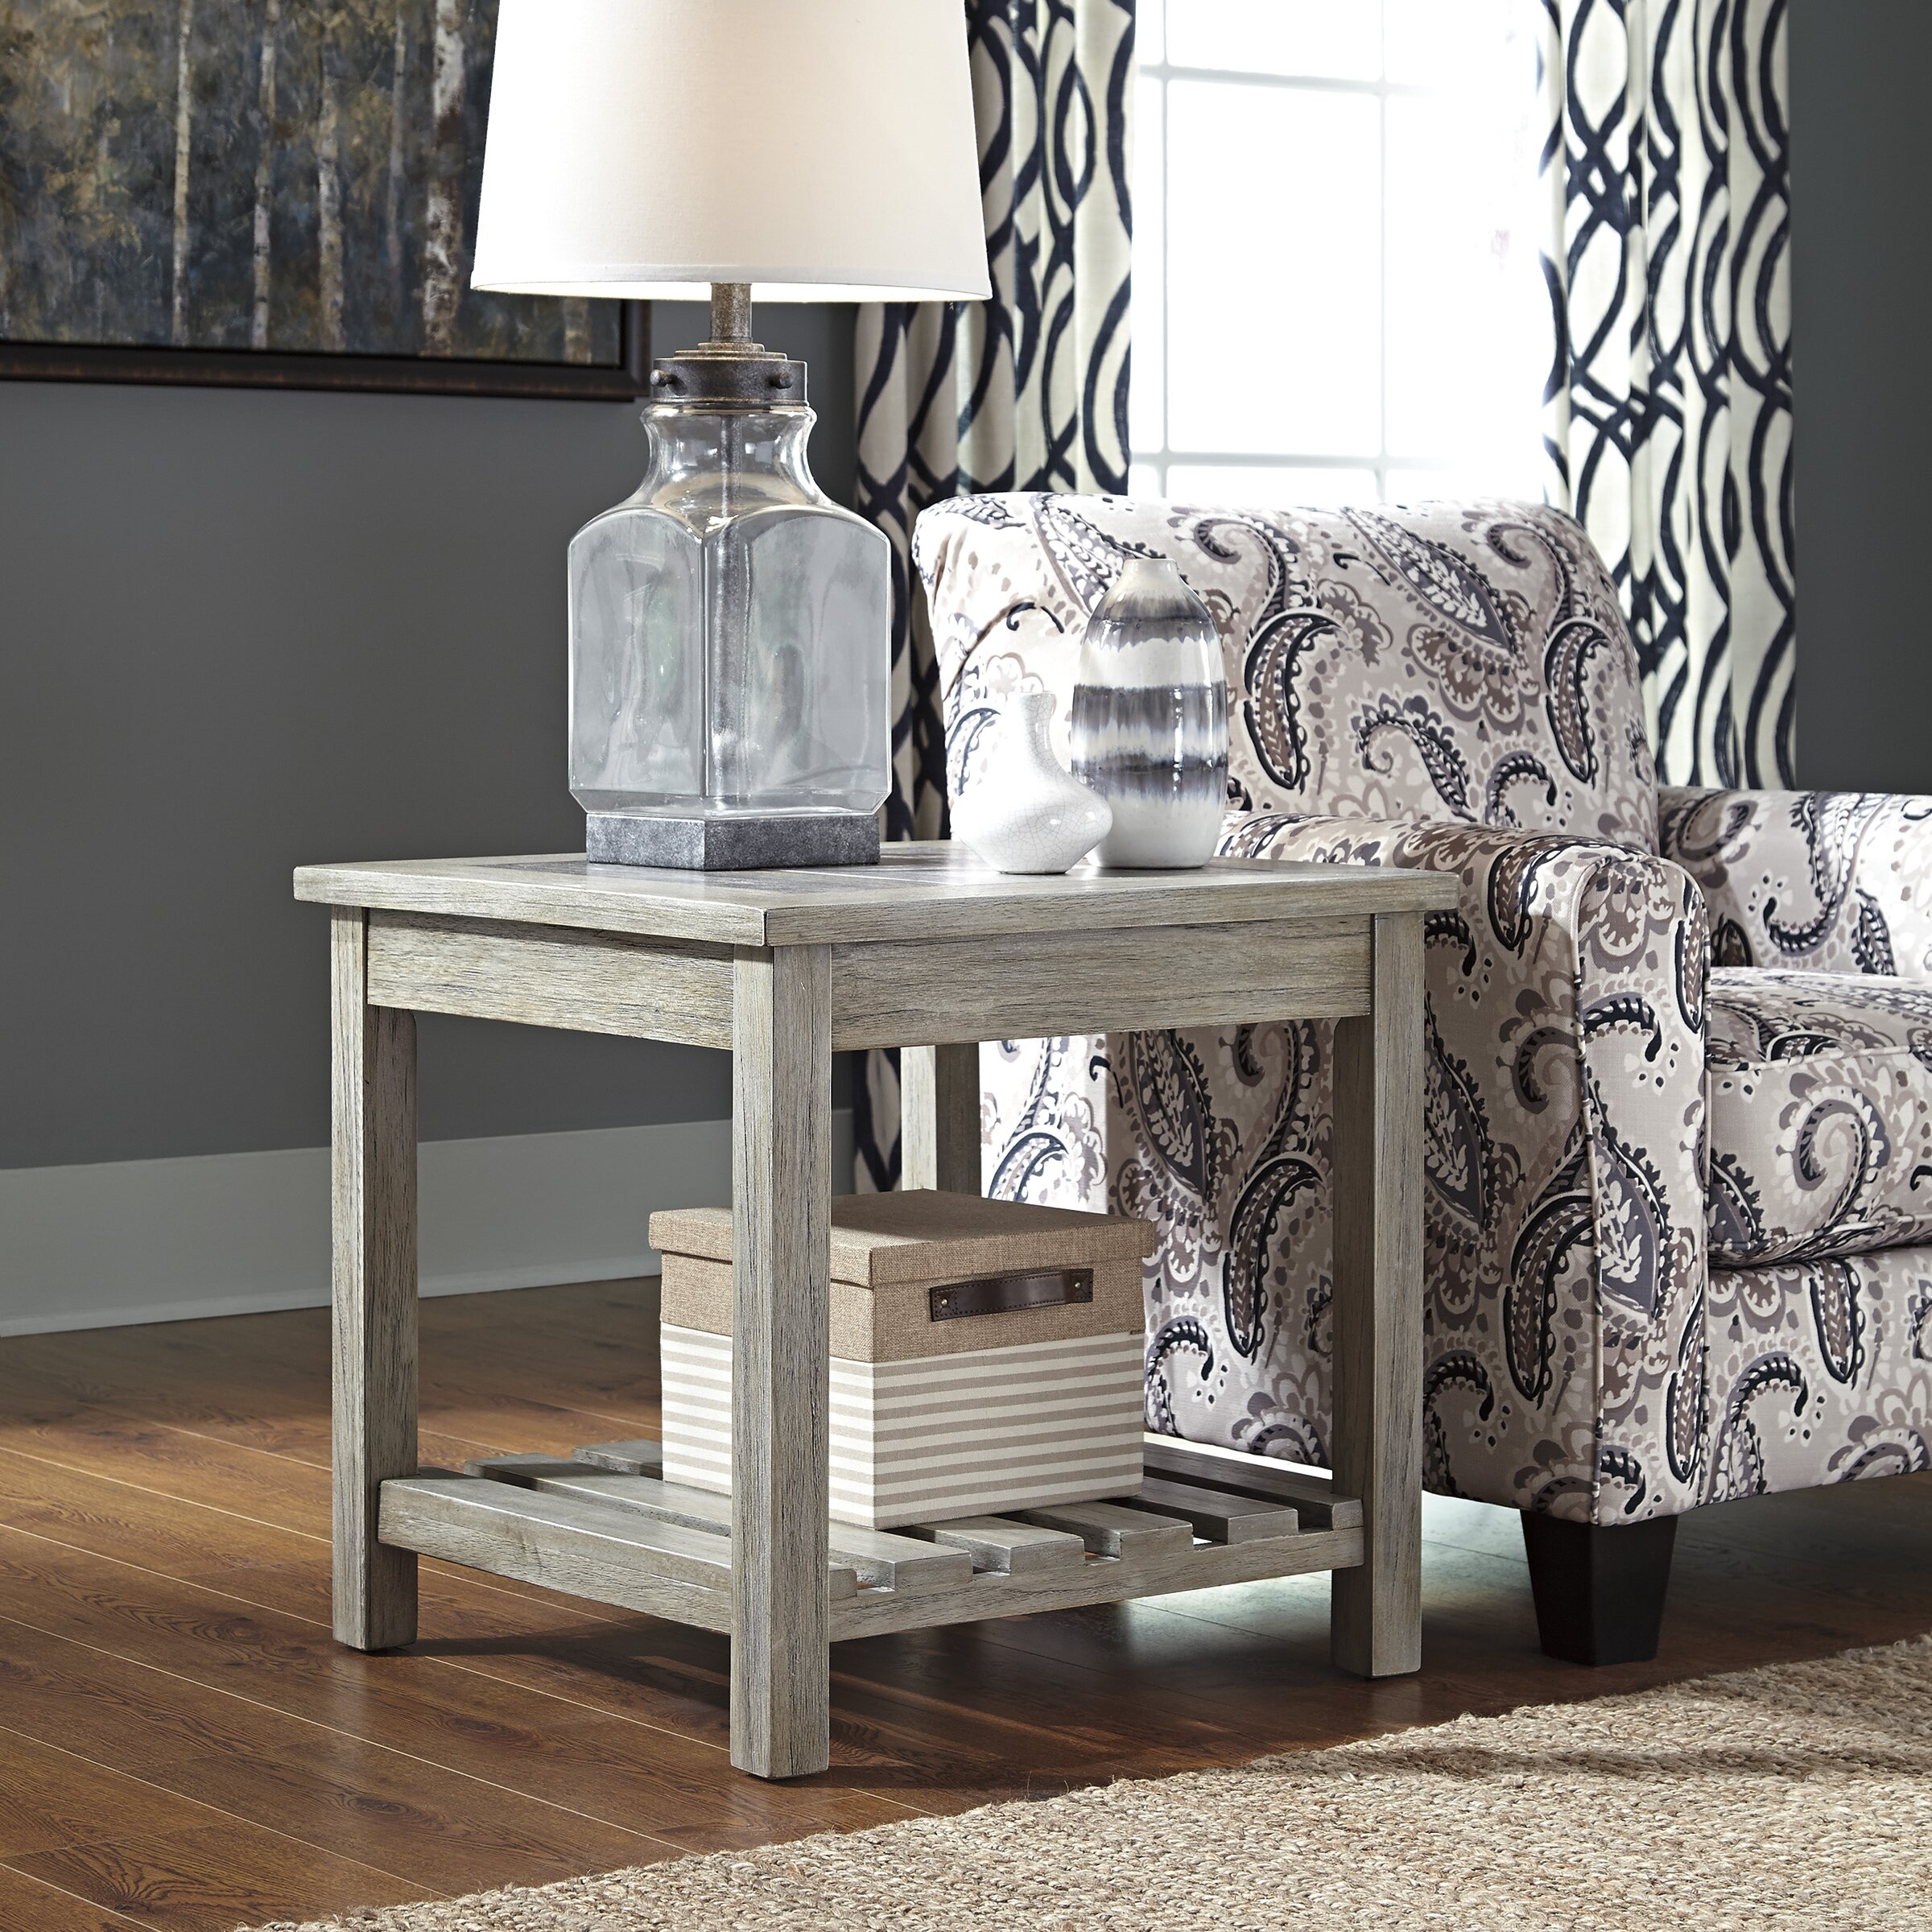 Briarwood Bathroom Cabinets Beachcrest Home Briarwood End Table Reviews Wayfair